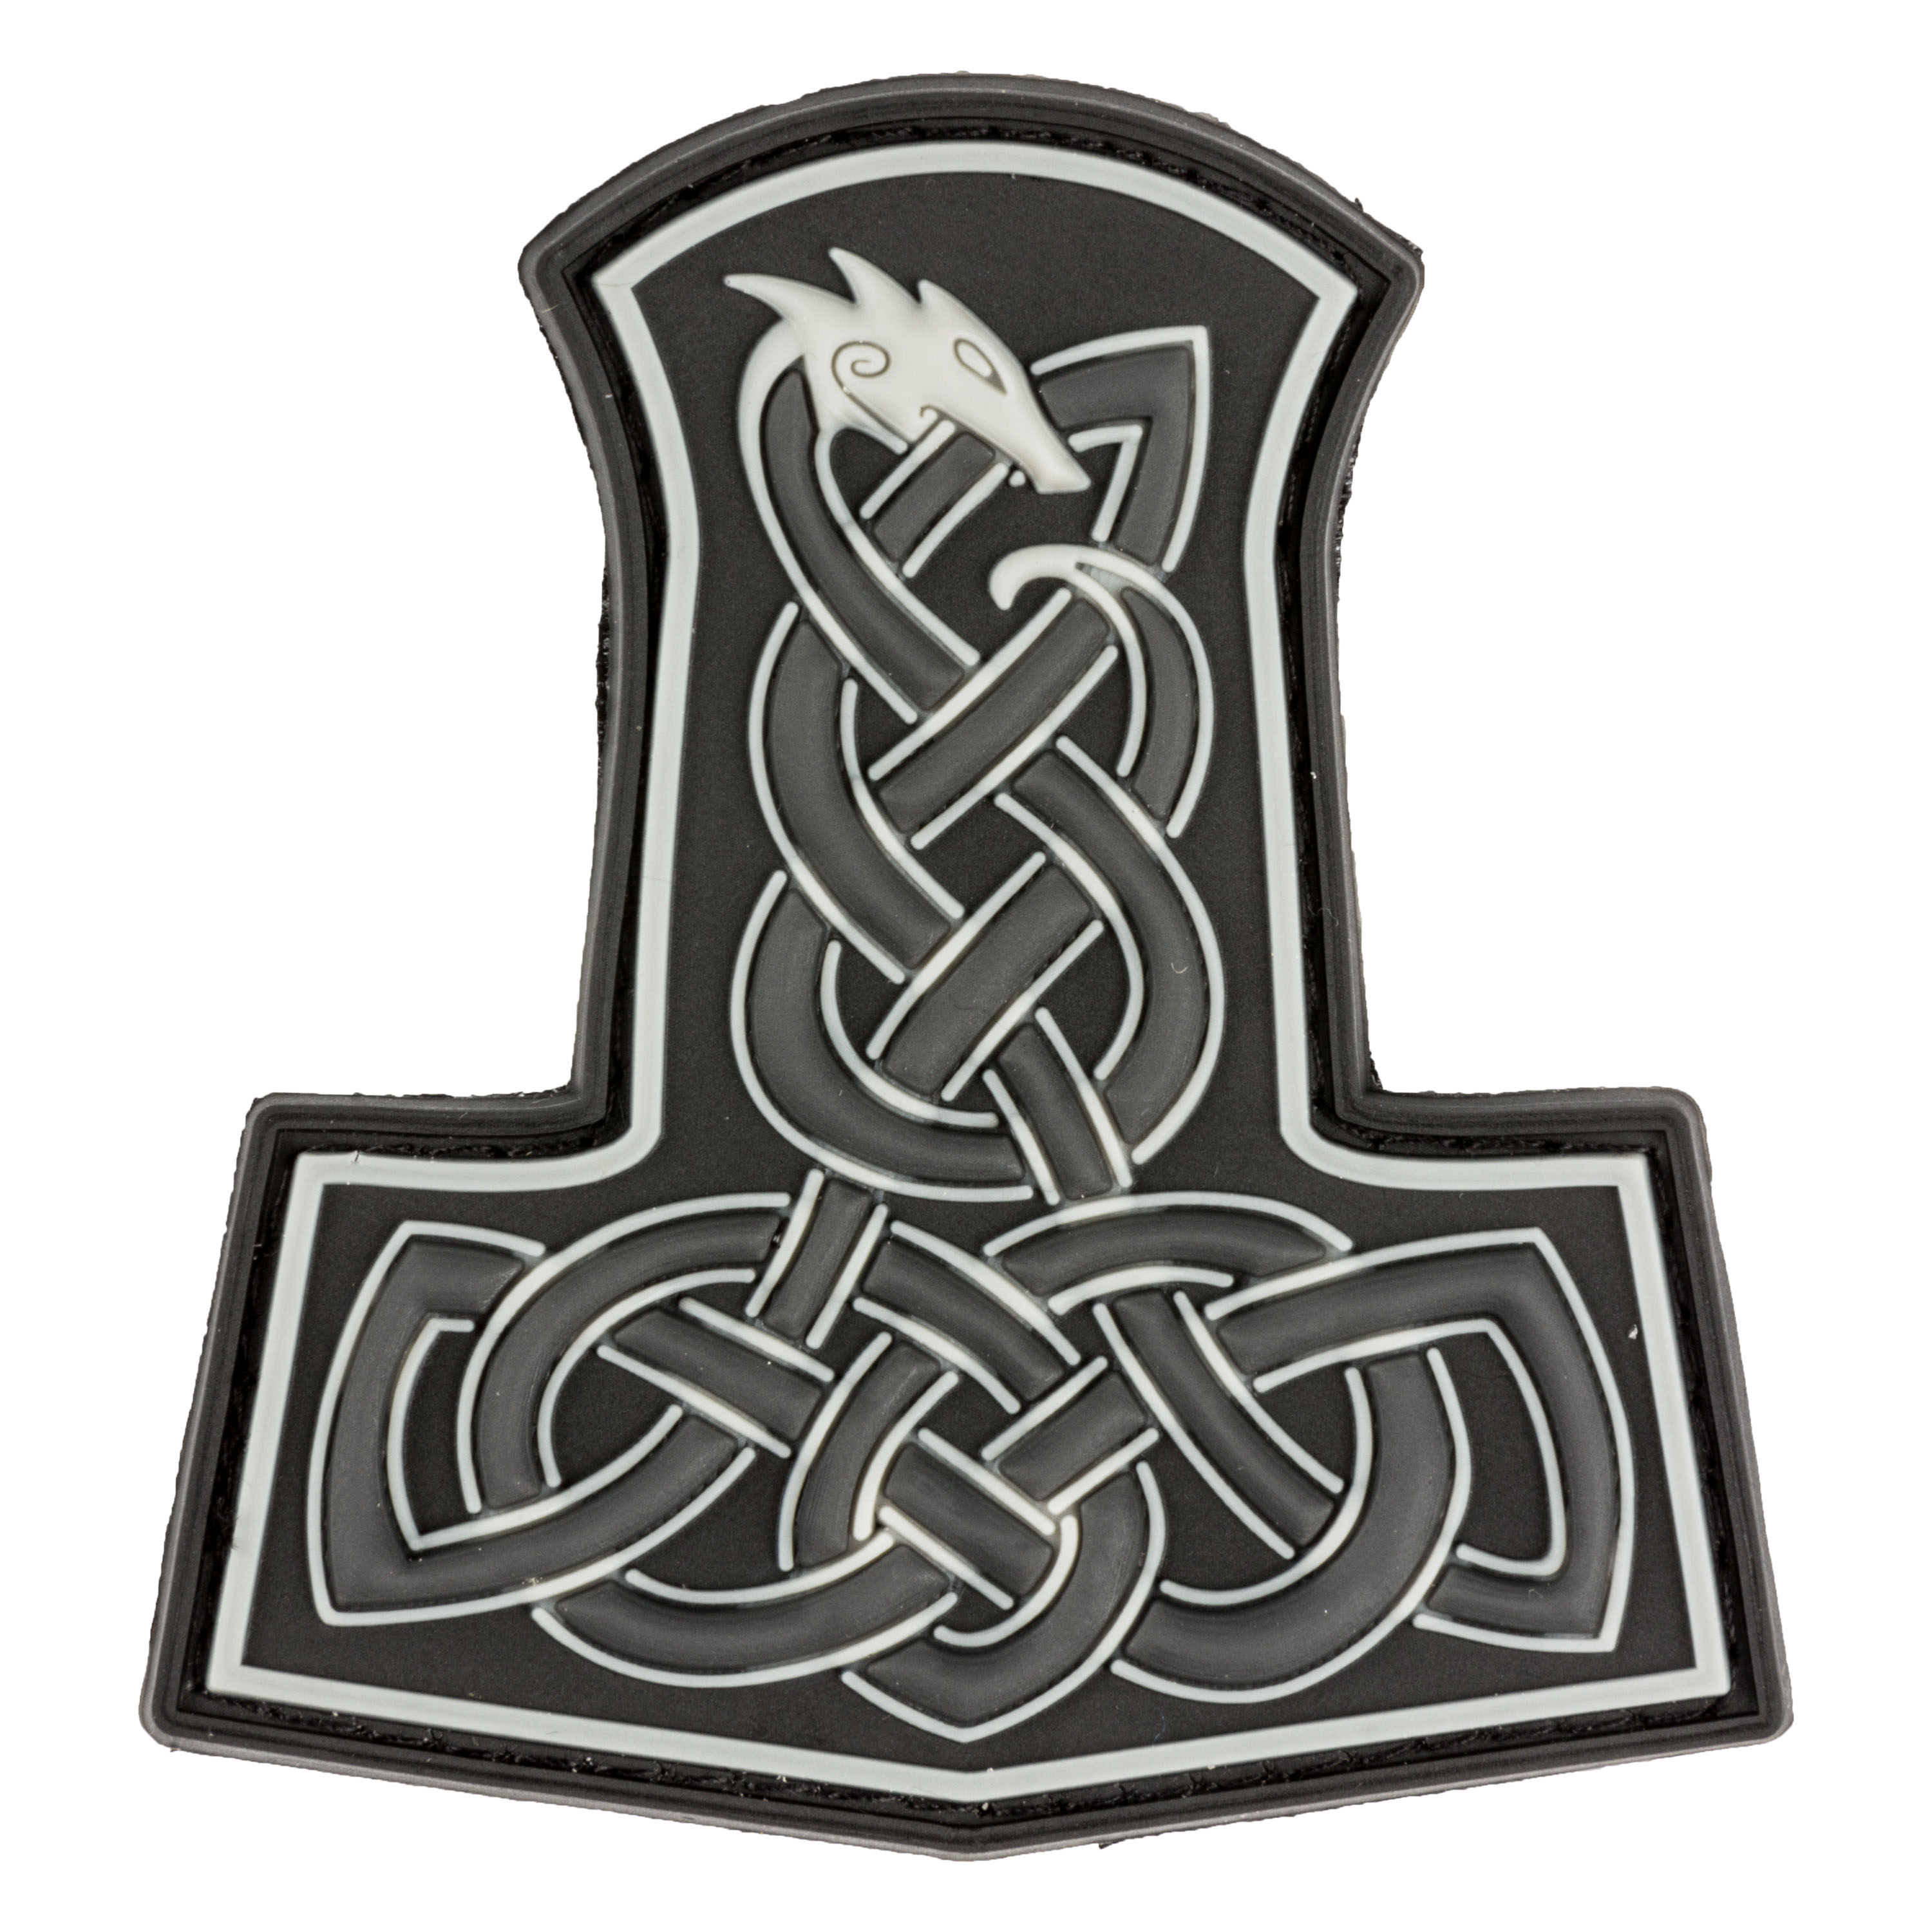 3D Patch Dragon Thors Hammer swat